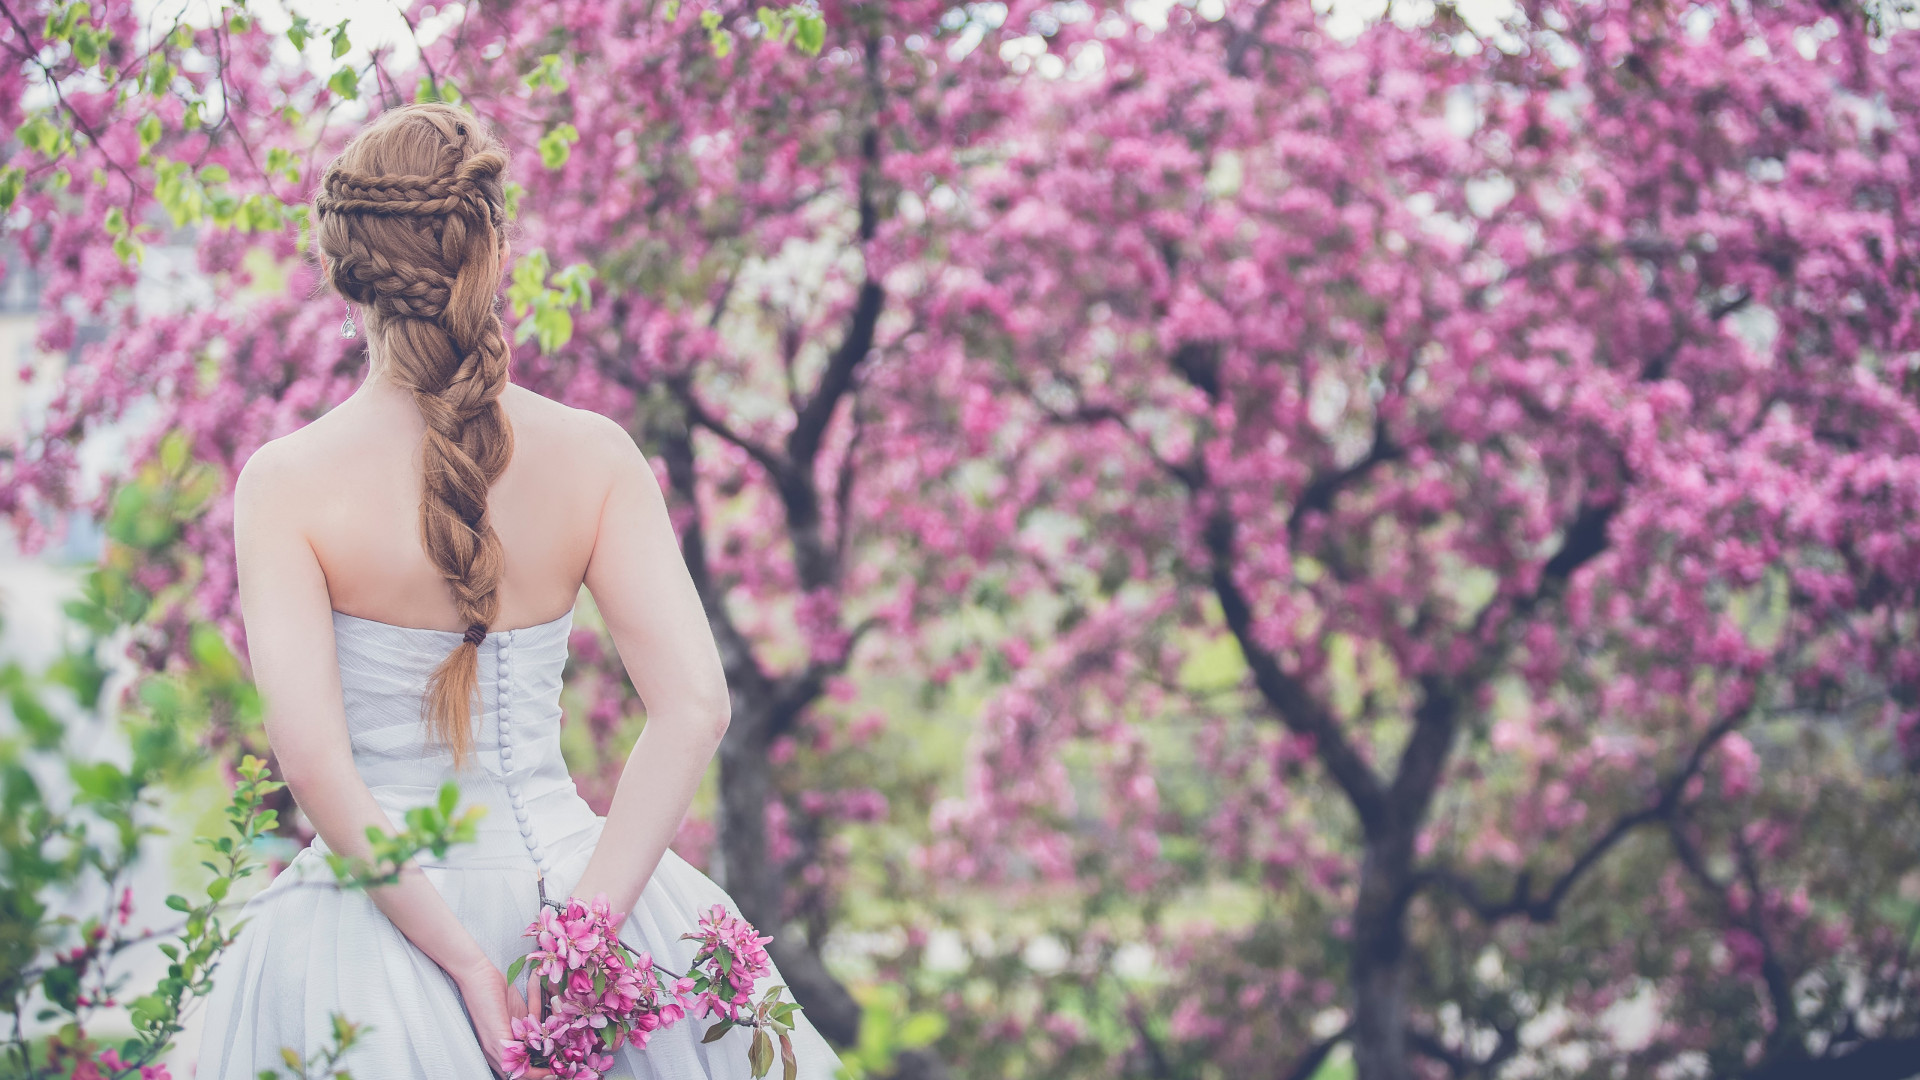 Wedding day. The beautiful bride wallpaper 1920x1080